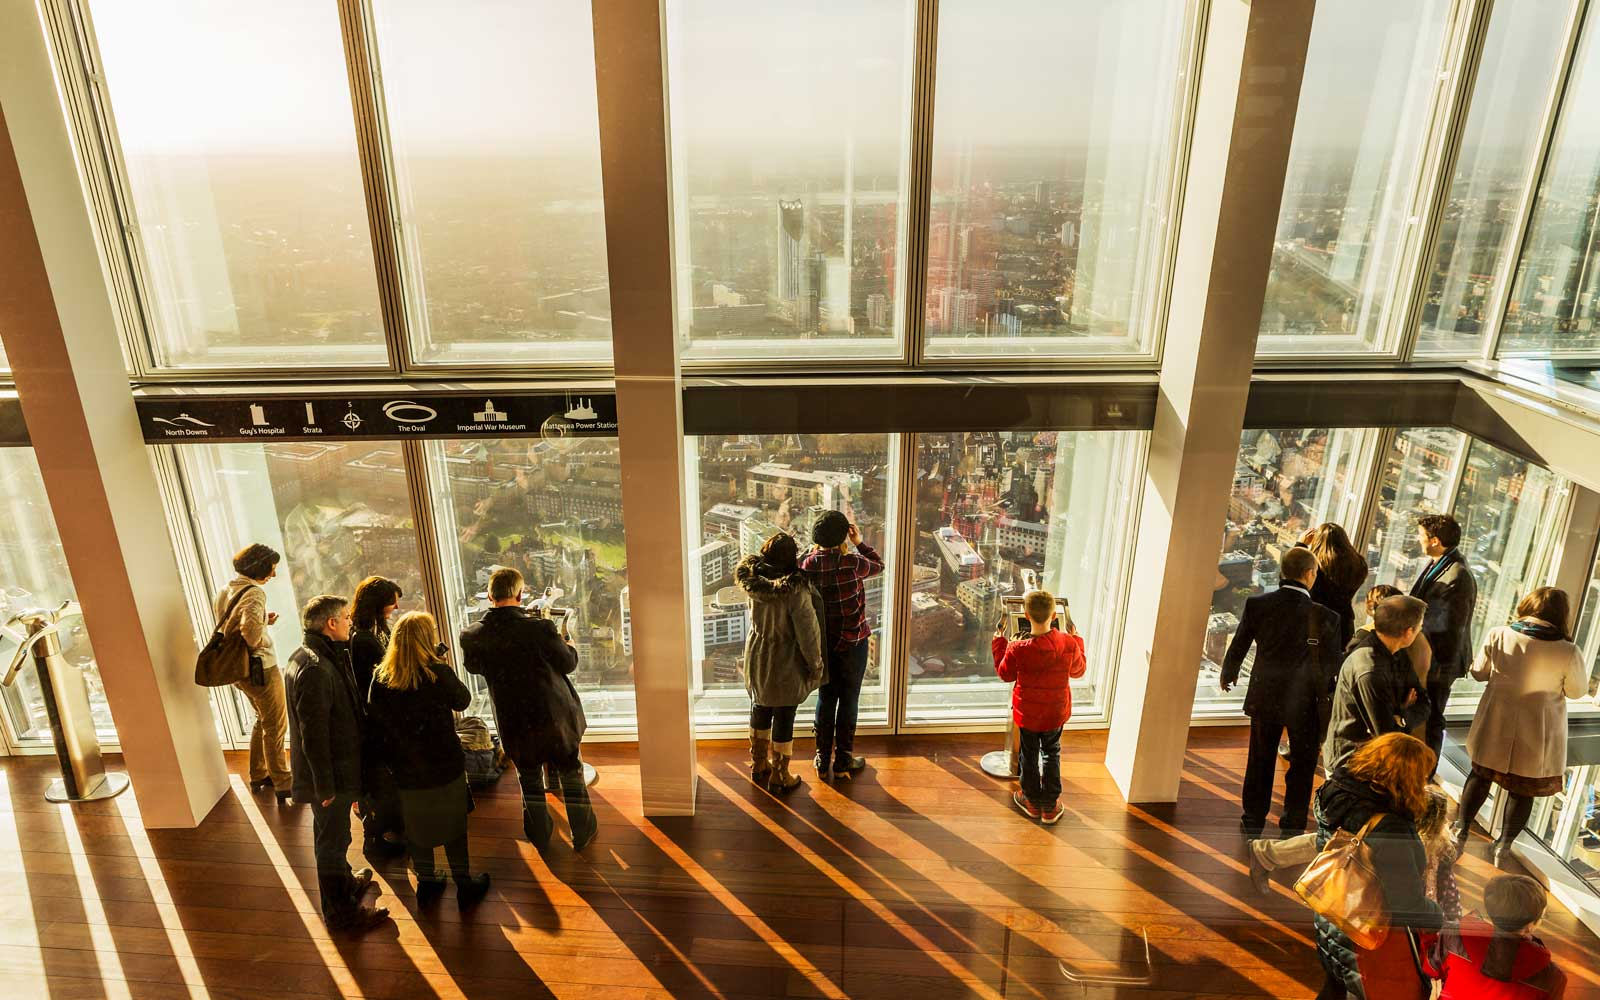 The View from The Shard, the observation deck (Renzo piano architect) at The Shard in London